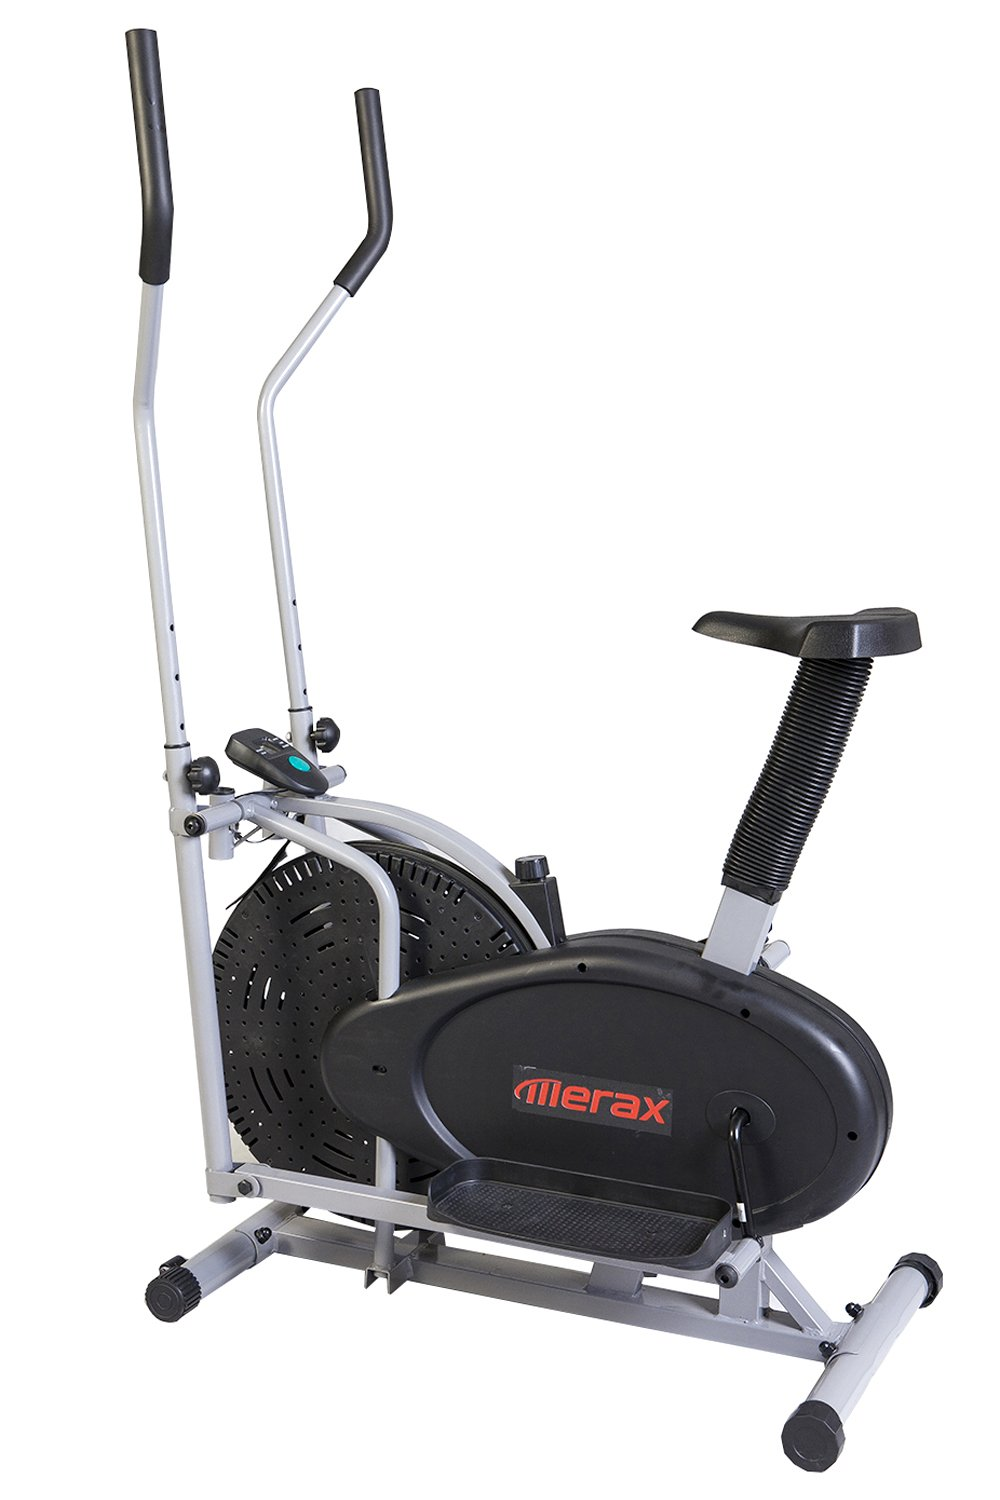 Merax Elliptical Exercise Bike